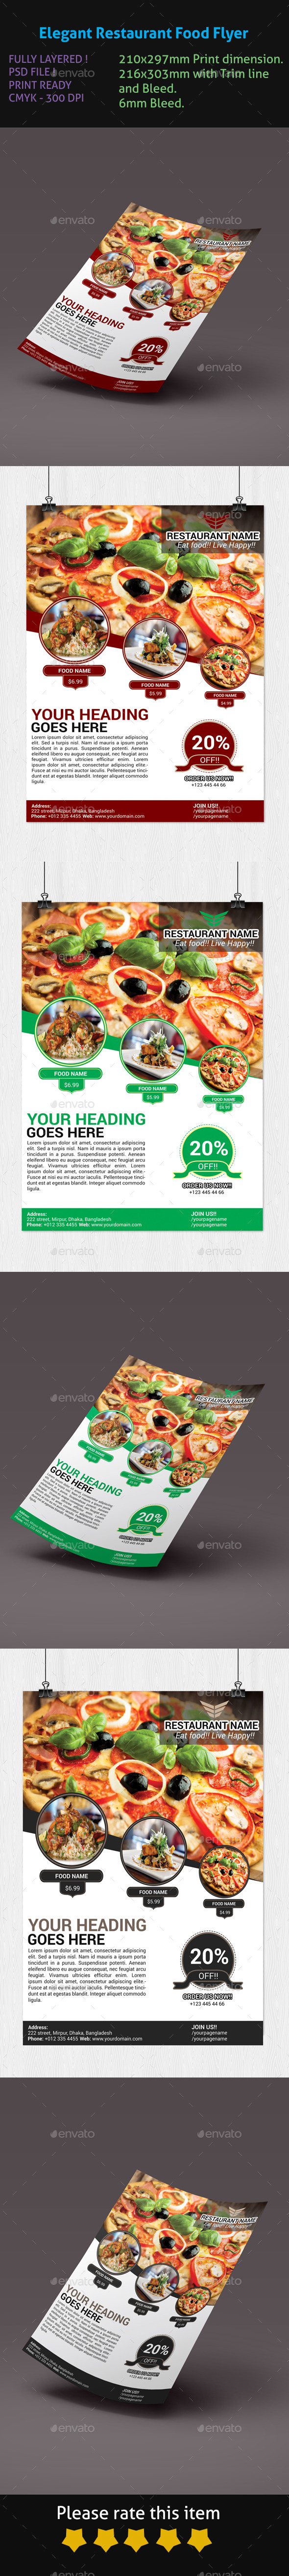 Elegant Restaurant Food Flyer - Restaurant Flyers